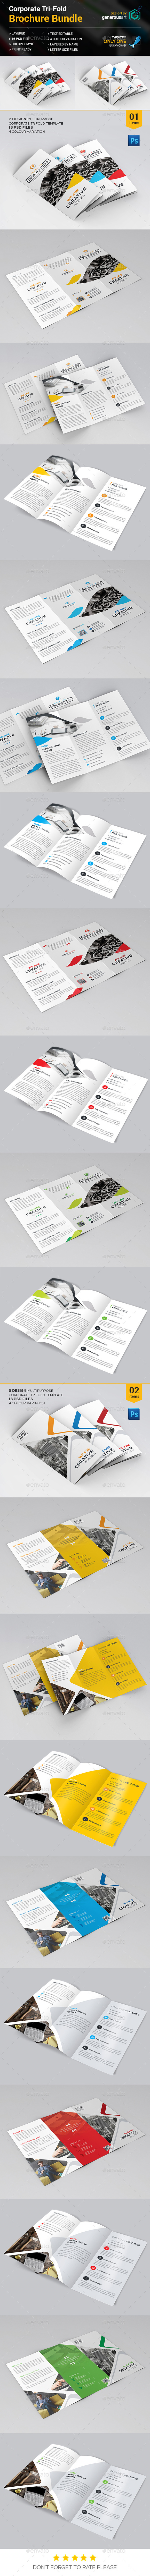 Tri-fold Brochure Bundle_2 in 1 - Corporate Brochures